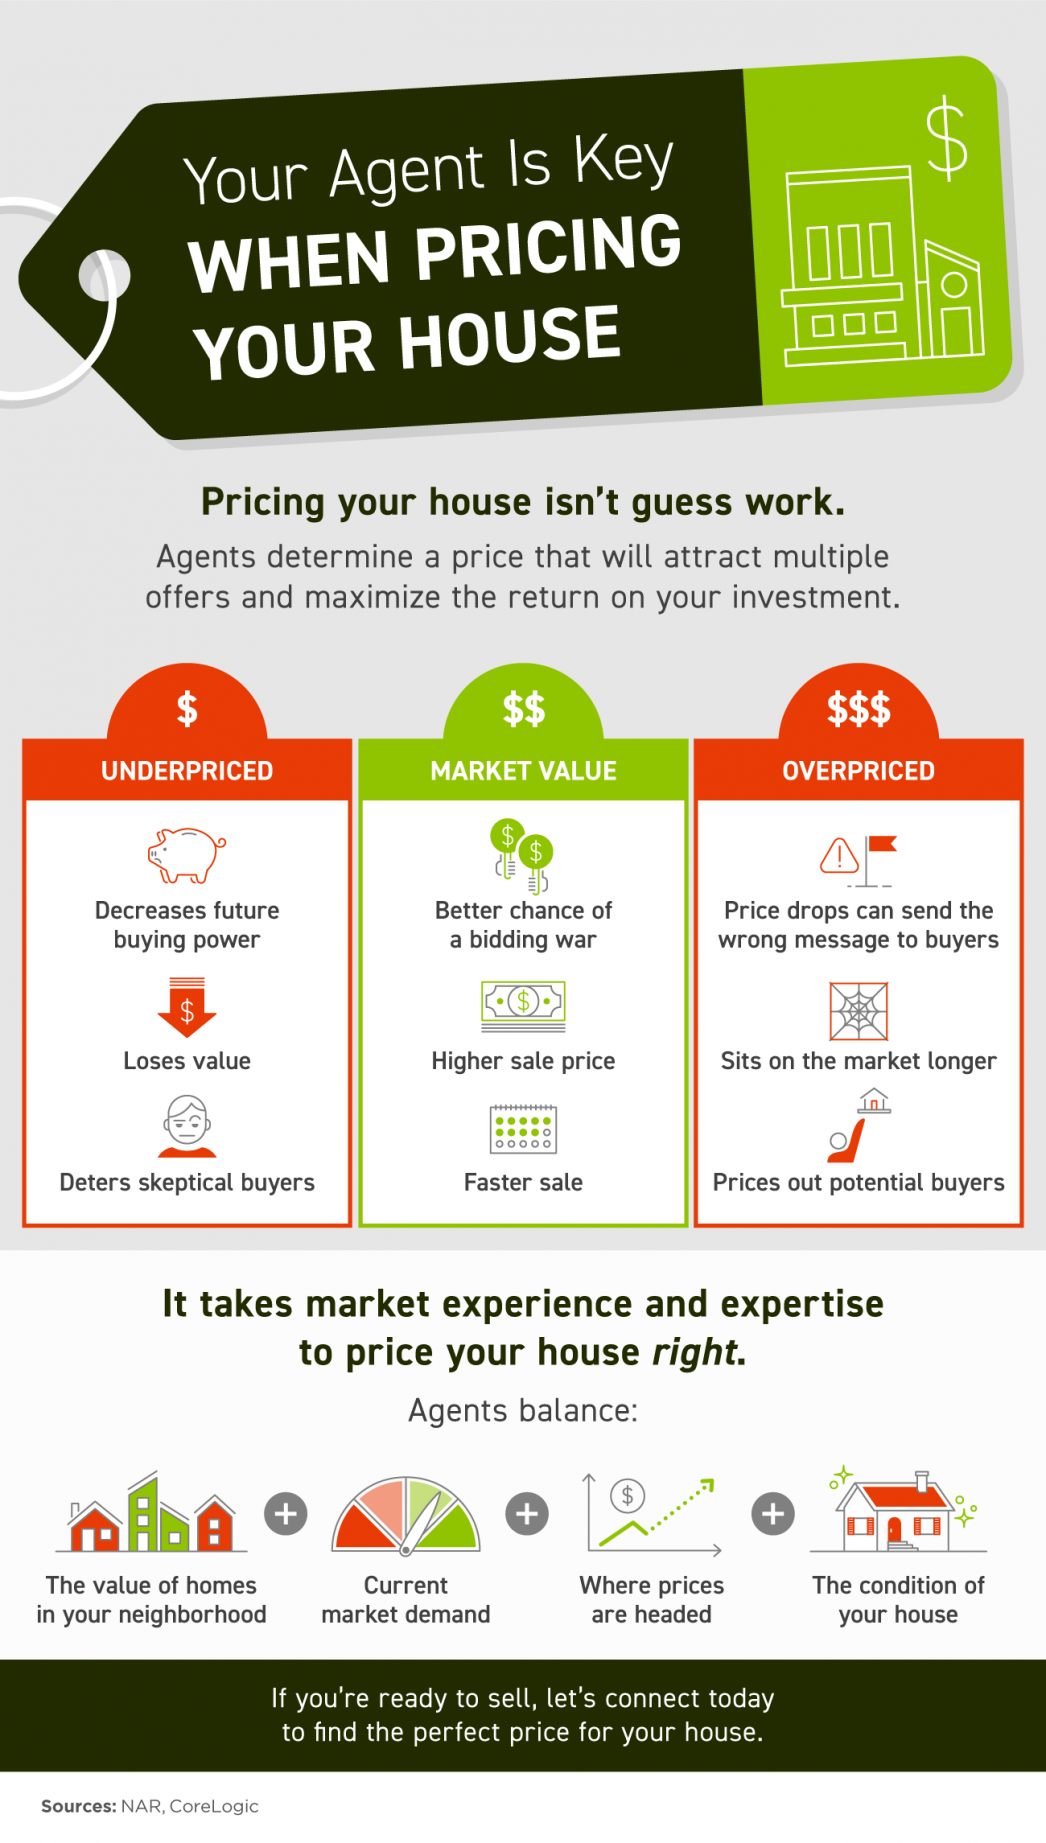 Your Agent Is Key When Pricing Your House [INFOGRAPHIC] | MyKCM